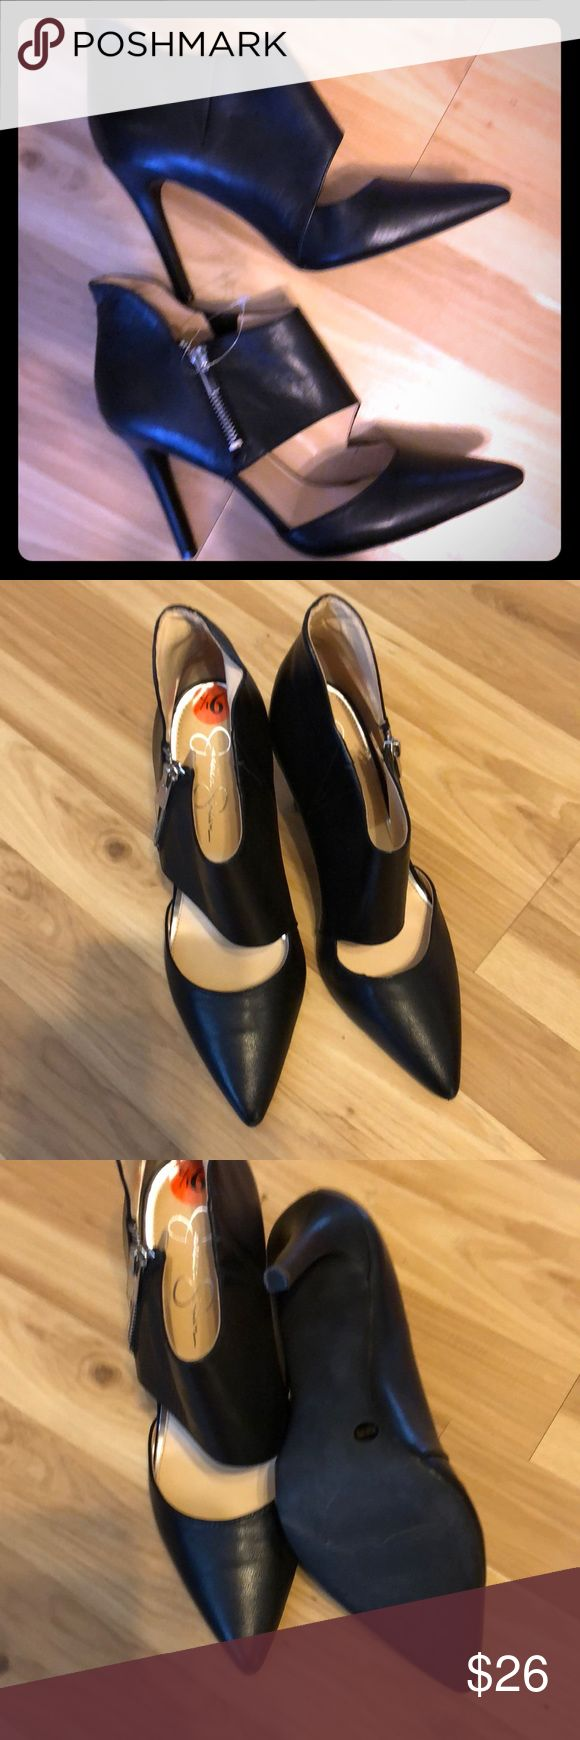 Jessica Simpson  Black Pumps size9.5 New Worn Black Pumps Jessica Simpson Shoes Heels